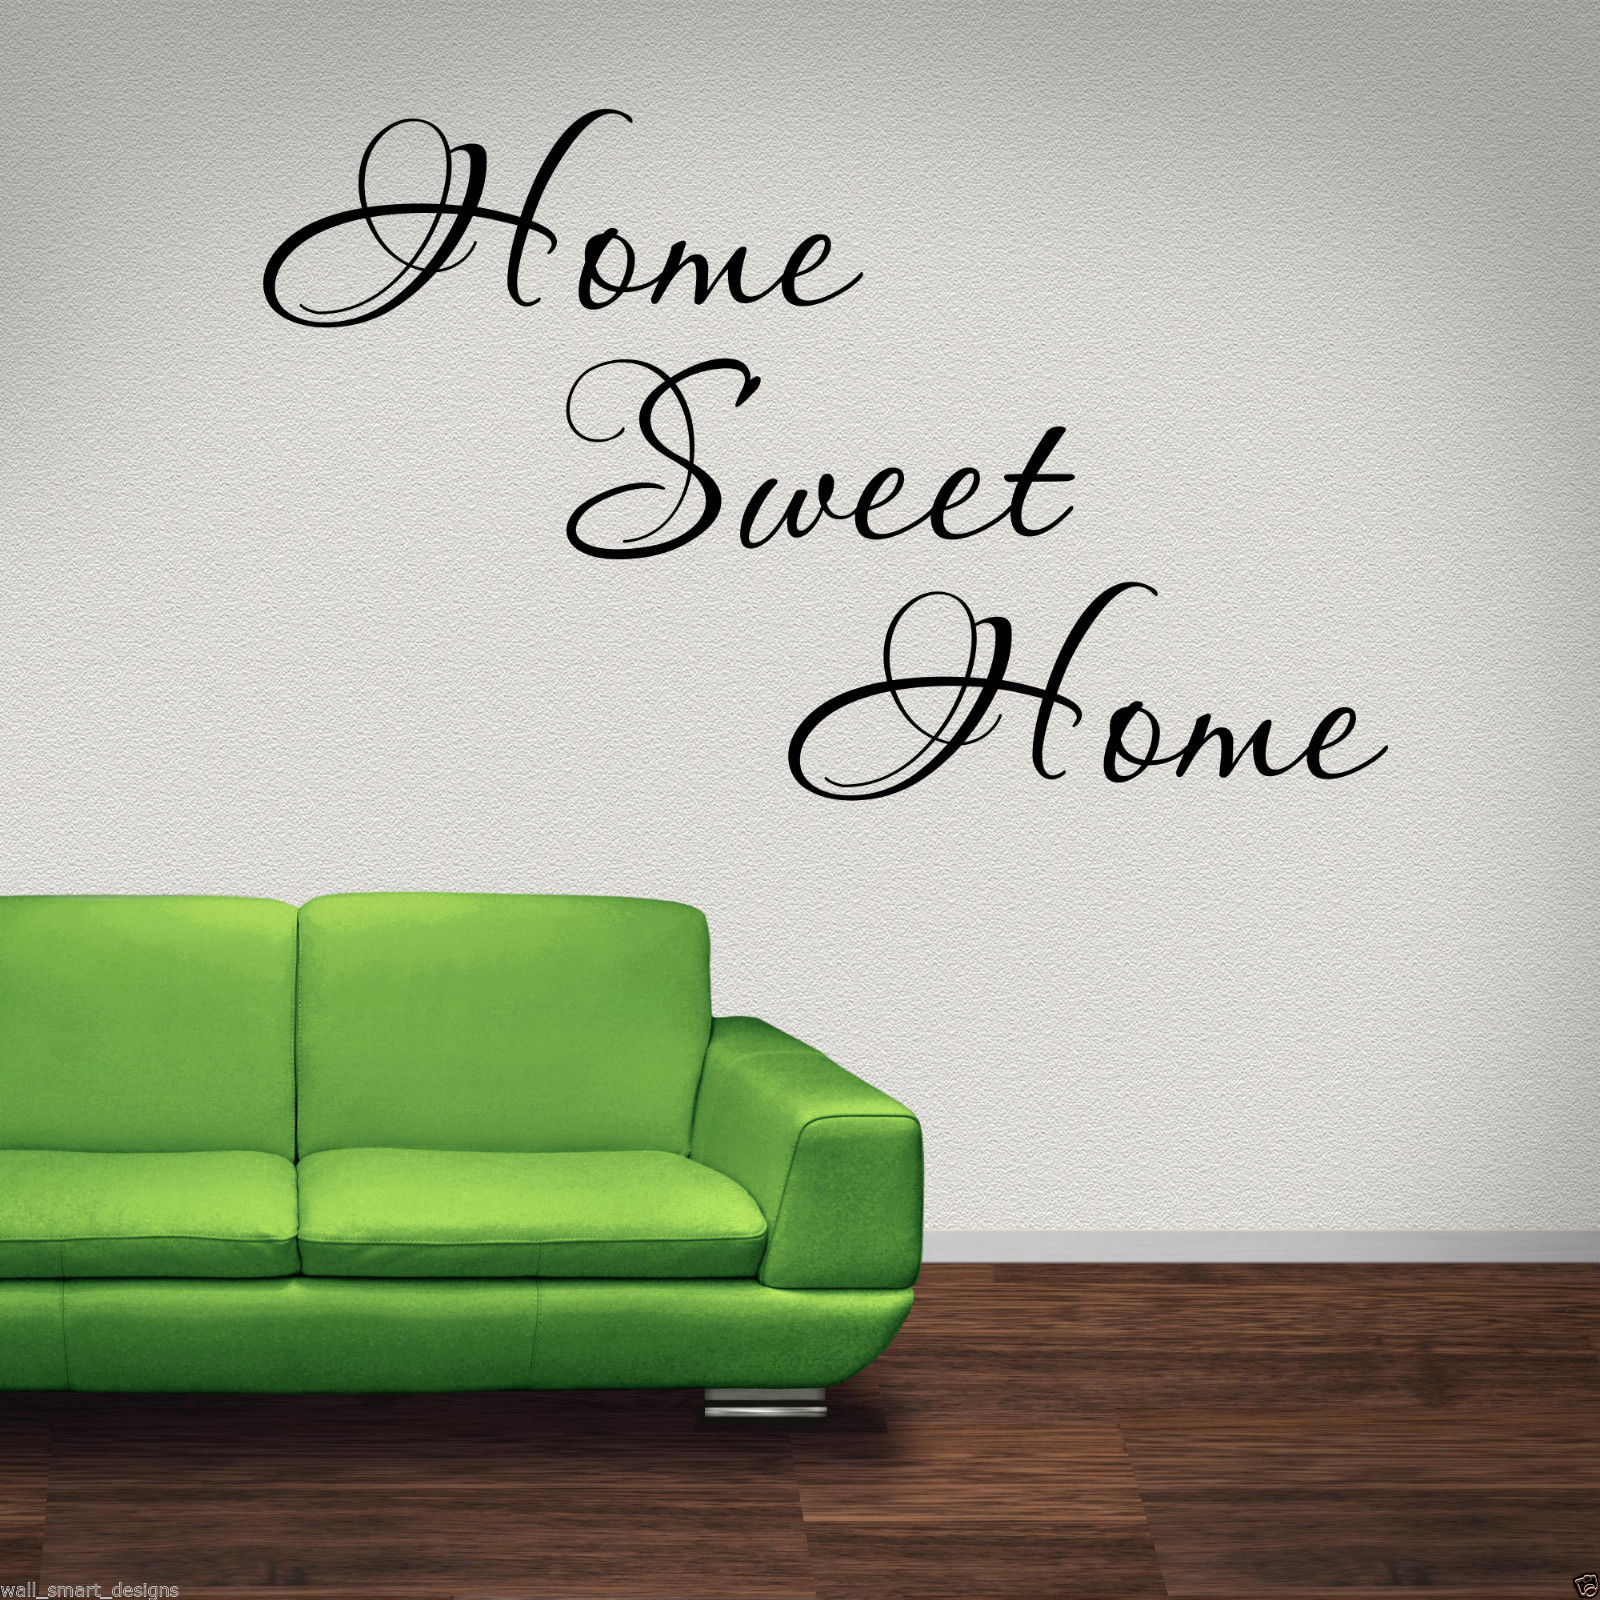 Home Sweet Home Wall Art home sweet home wall art sticker lounge hall quote decal mural